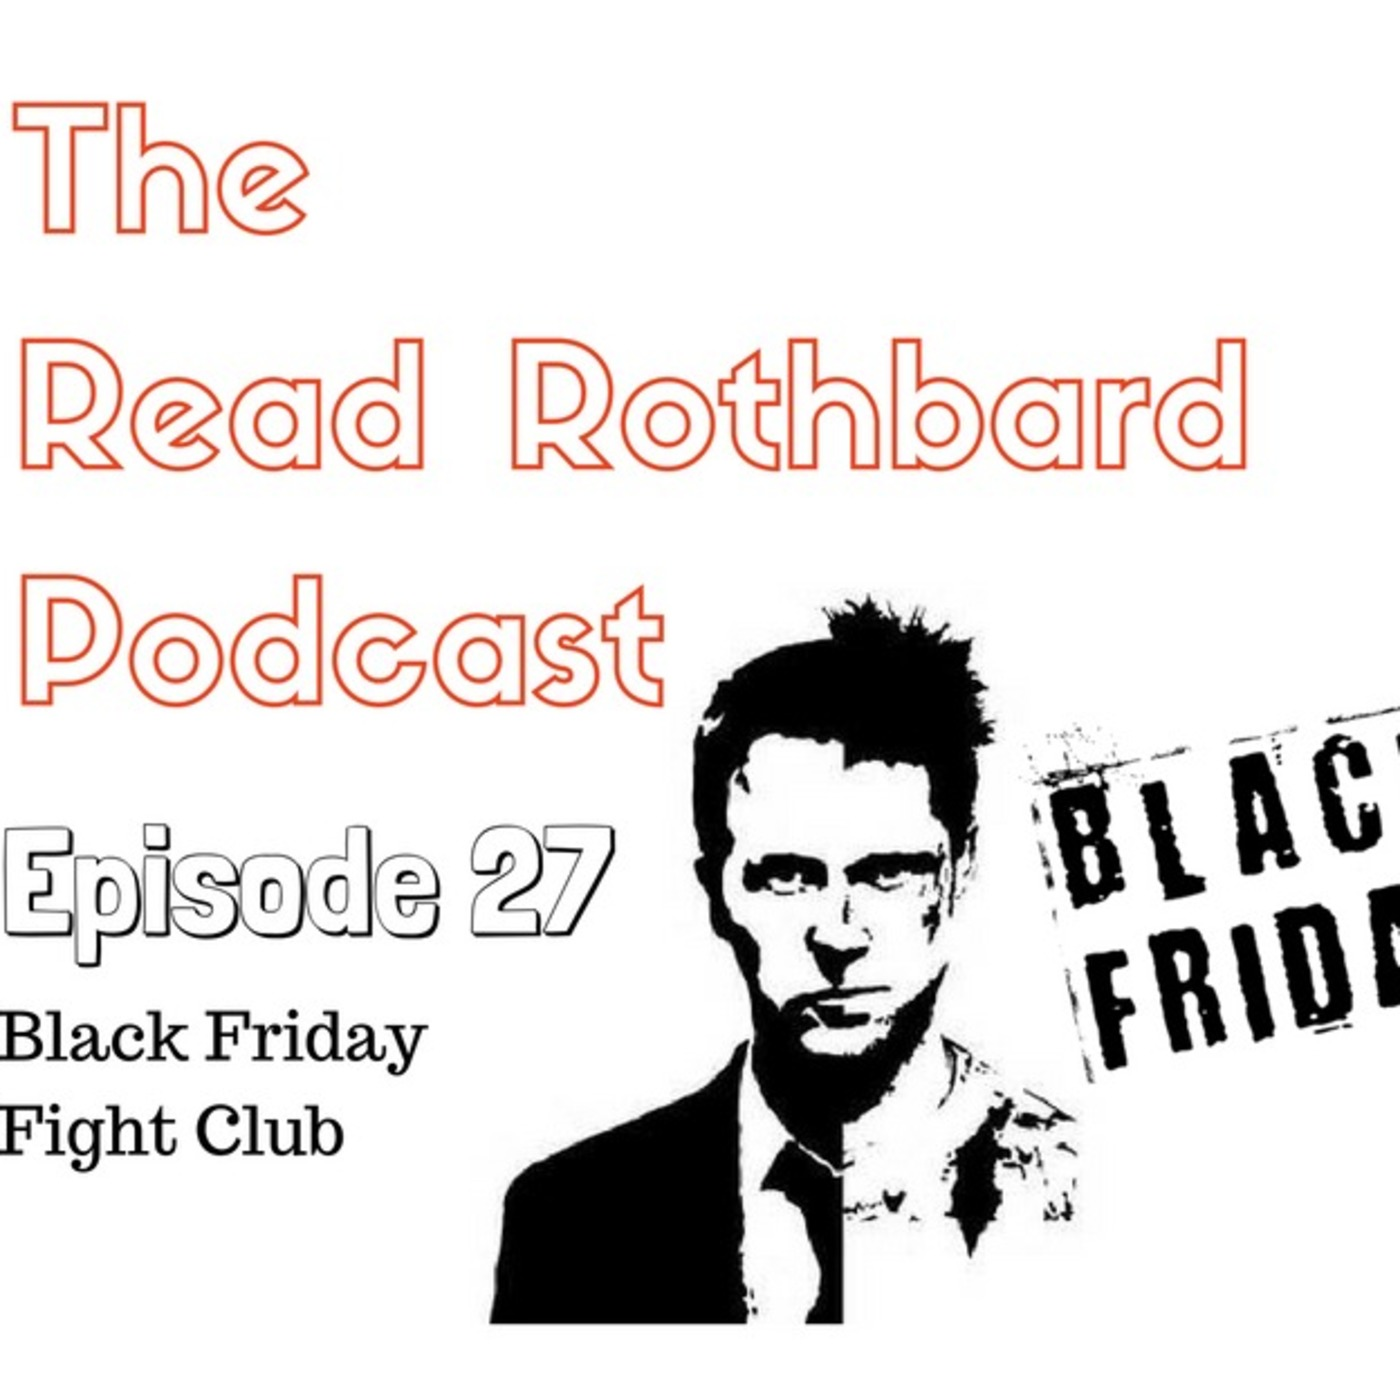 Episode 27 Black Friday Fight Club The Read Rothbard Podcast